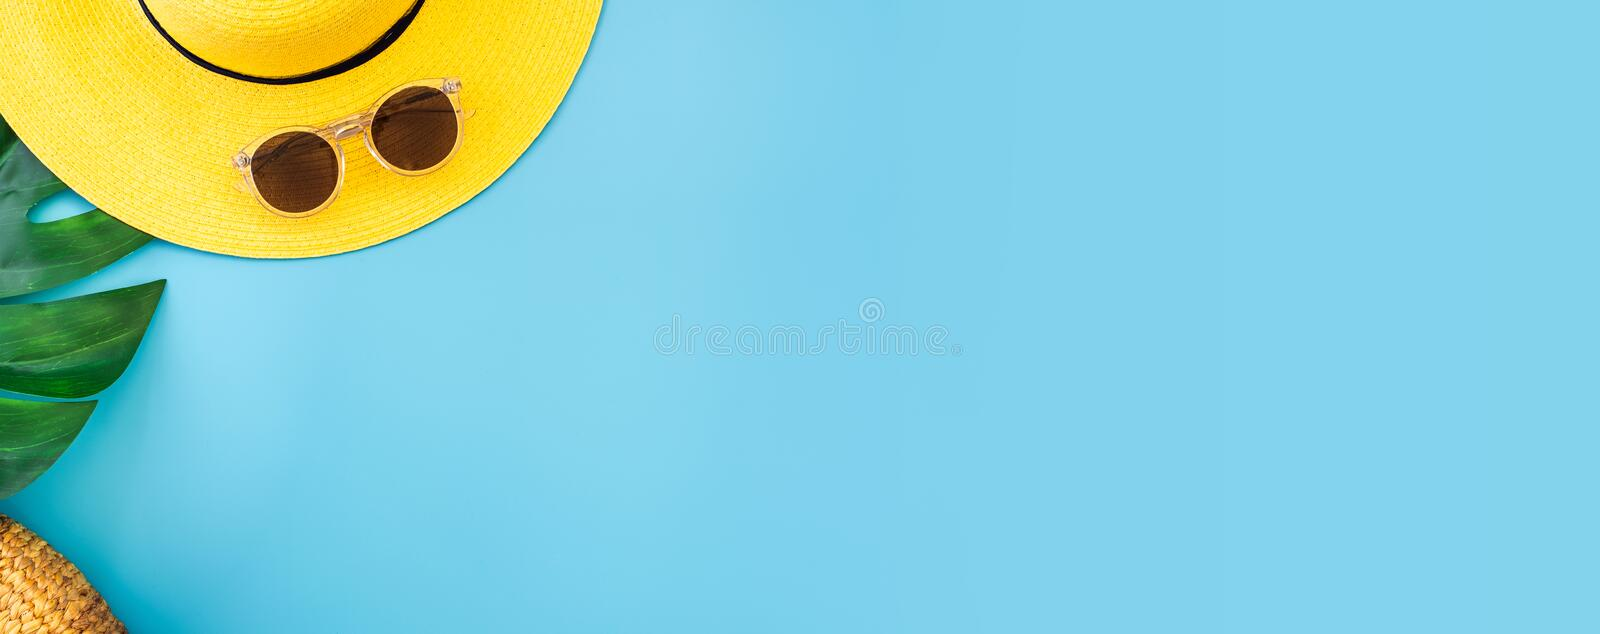 Summer blue banner with yellow hat ,sunglasses and monstera leaf on blue background top view royalty free stock photo